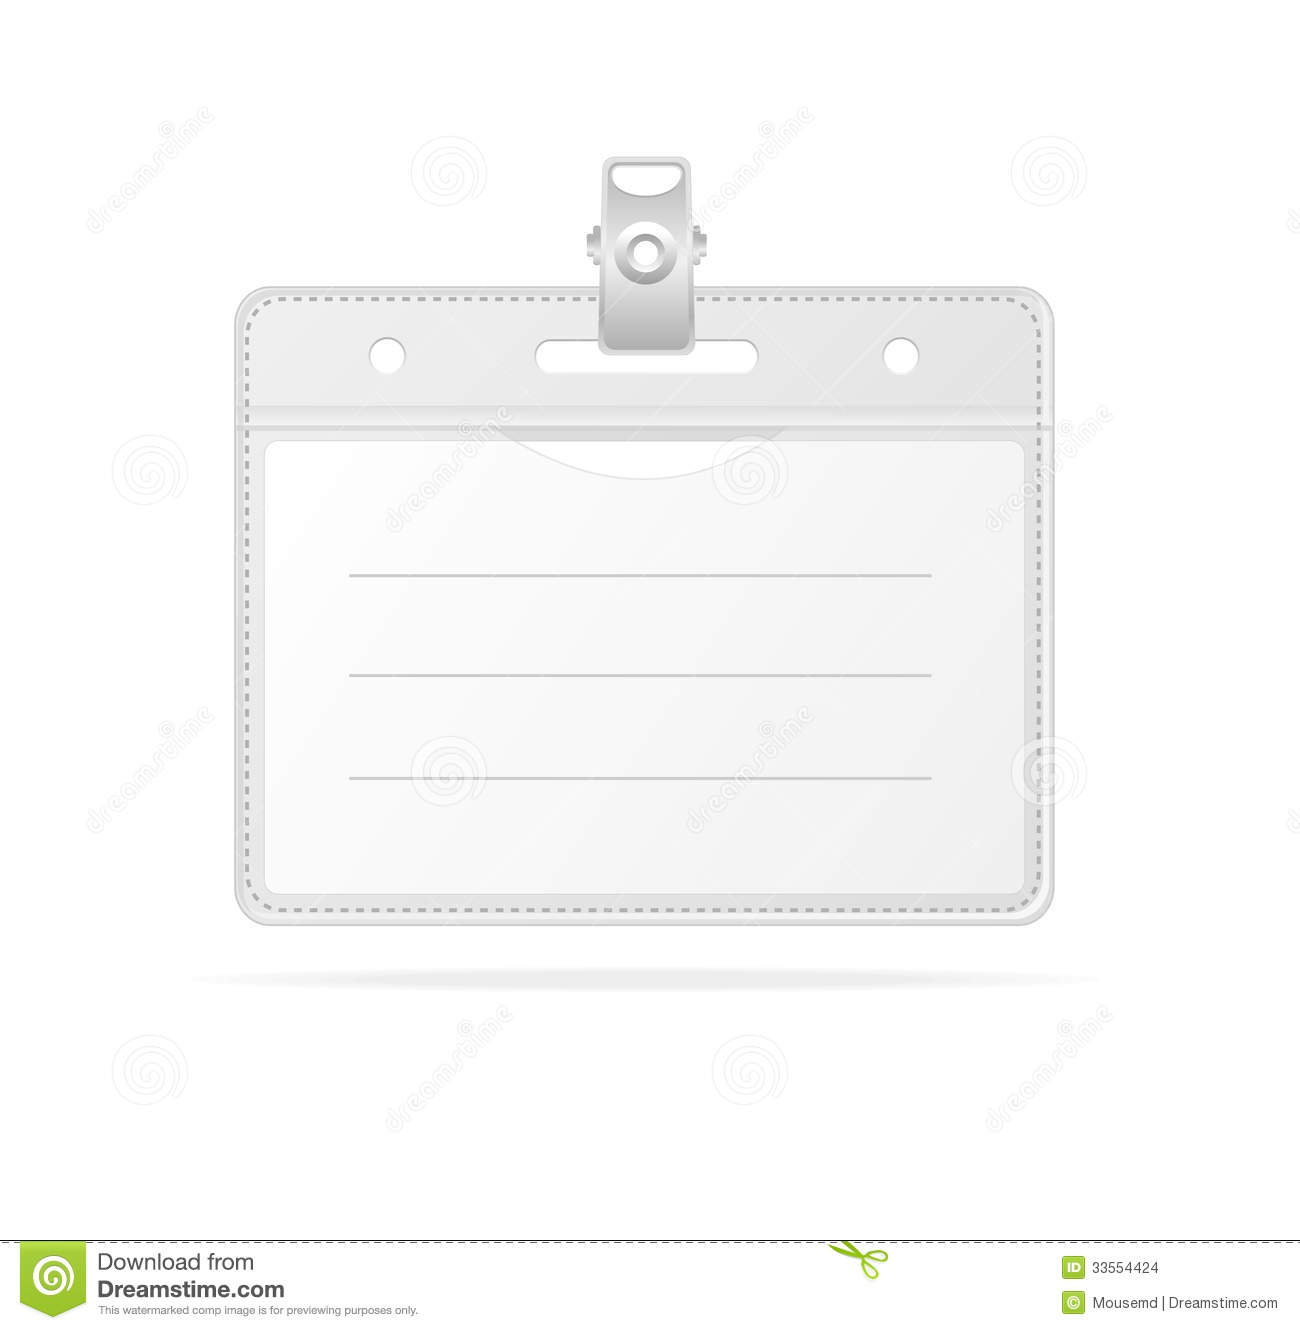 Pin Blank Id Cards on Pinterest